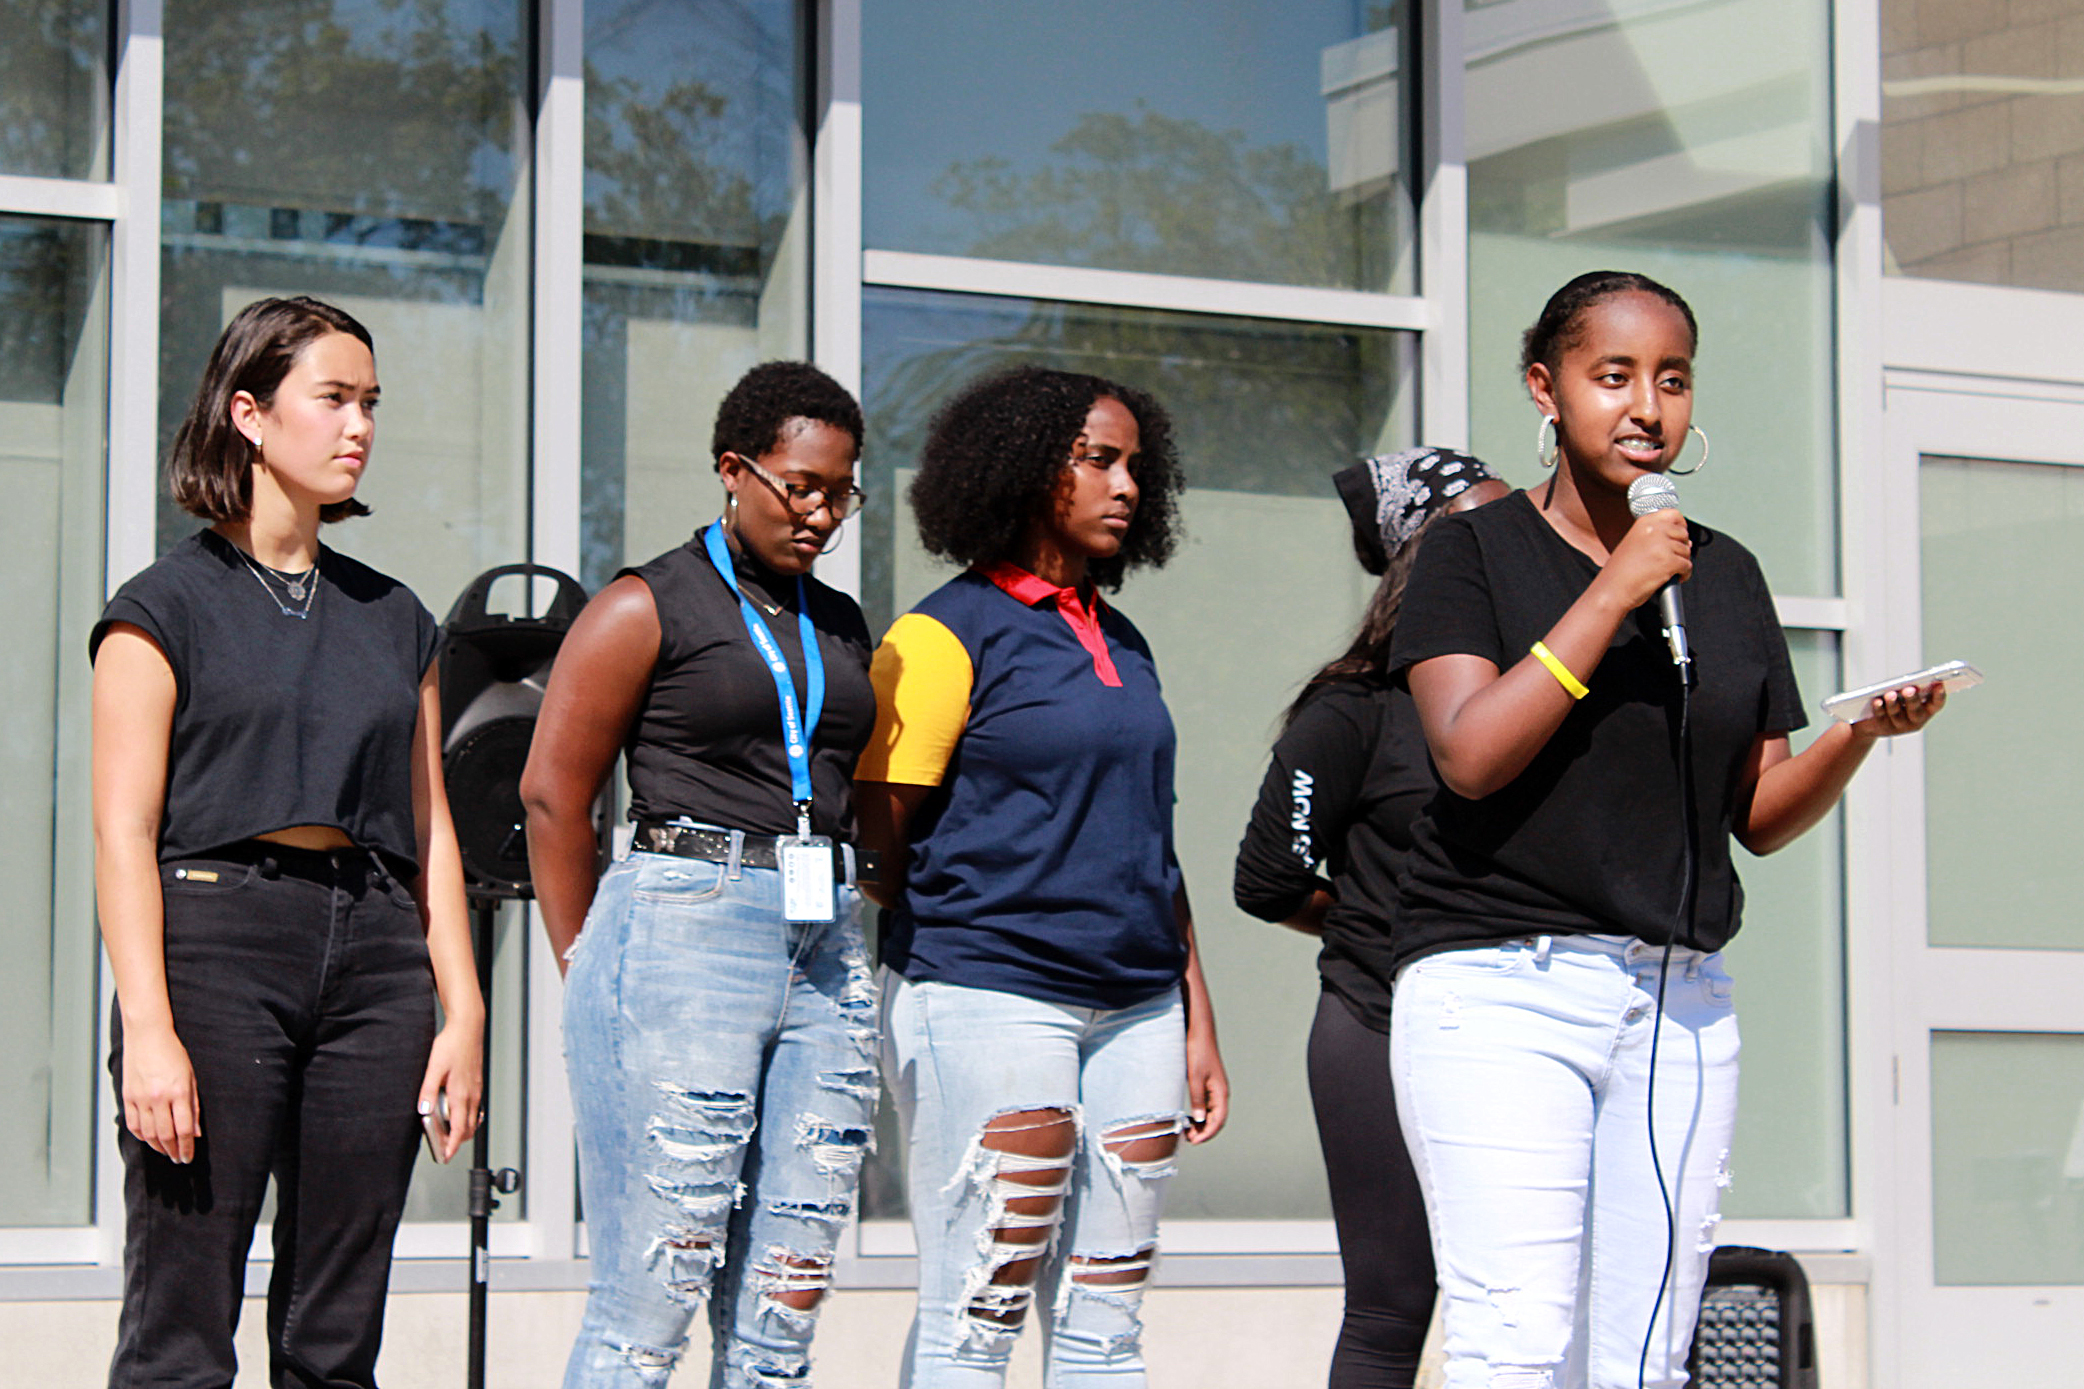 Students from Seattle Public Schools and student allies from other districts speak at a rally at the Rainier Beach Community Center on September 4. Pictured from left to right: Davie Ross, Angelina Riley, Kidist Habte and Betty Mekonnen.